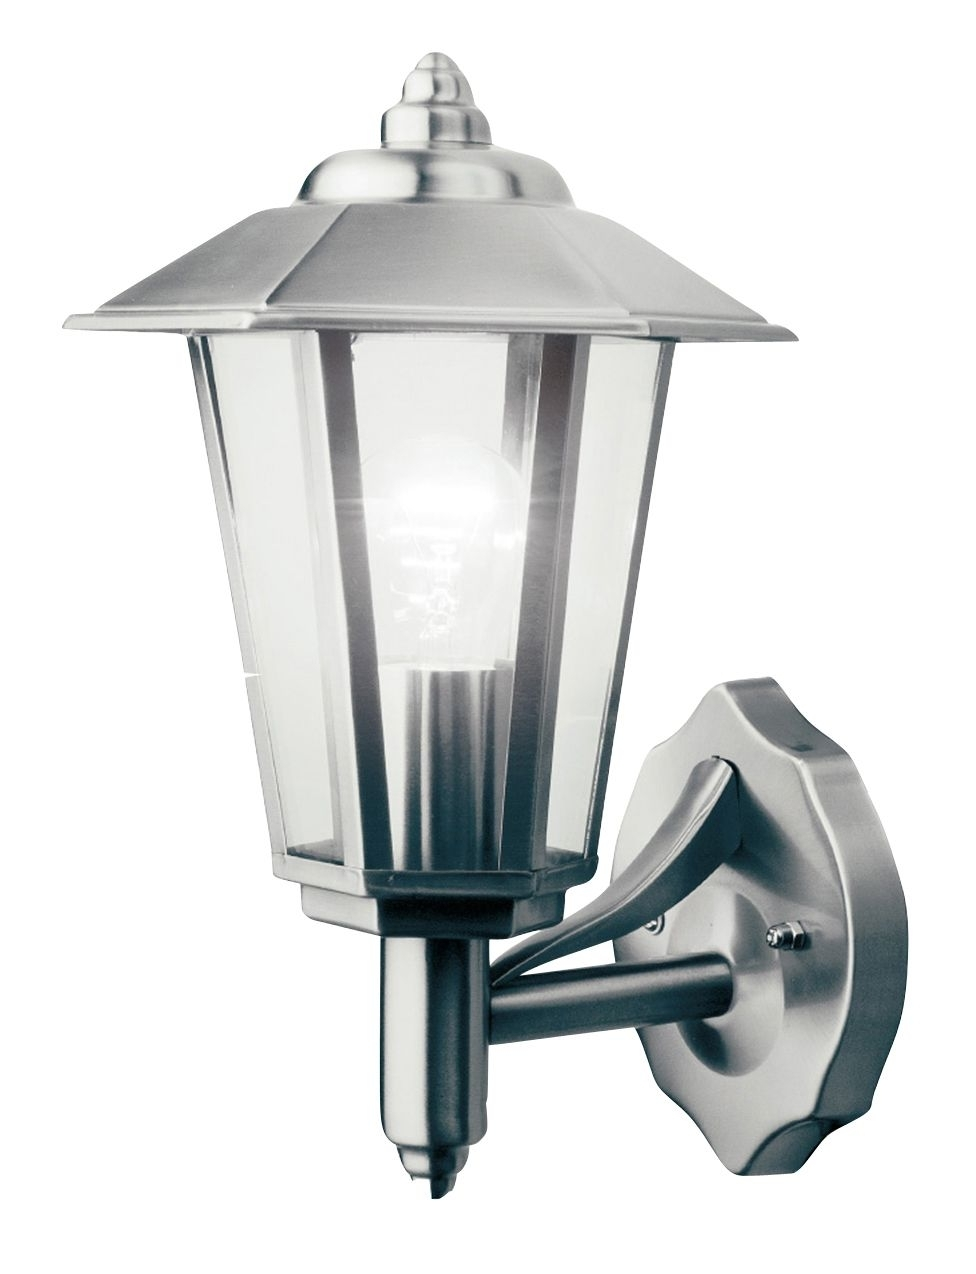 Endon Lighting Outdoor Wall Lanterns With Most Popular Newport Mains Powered External Wall Lantern (View 6 of 20)